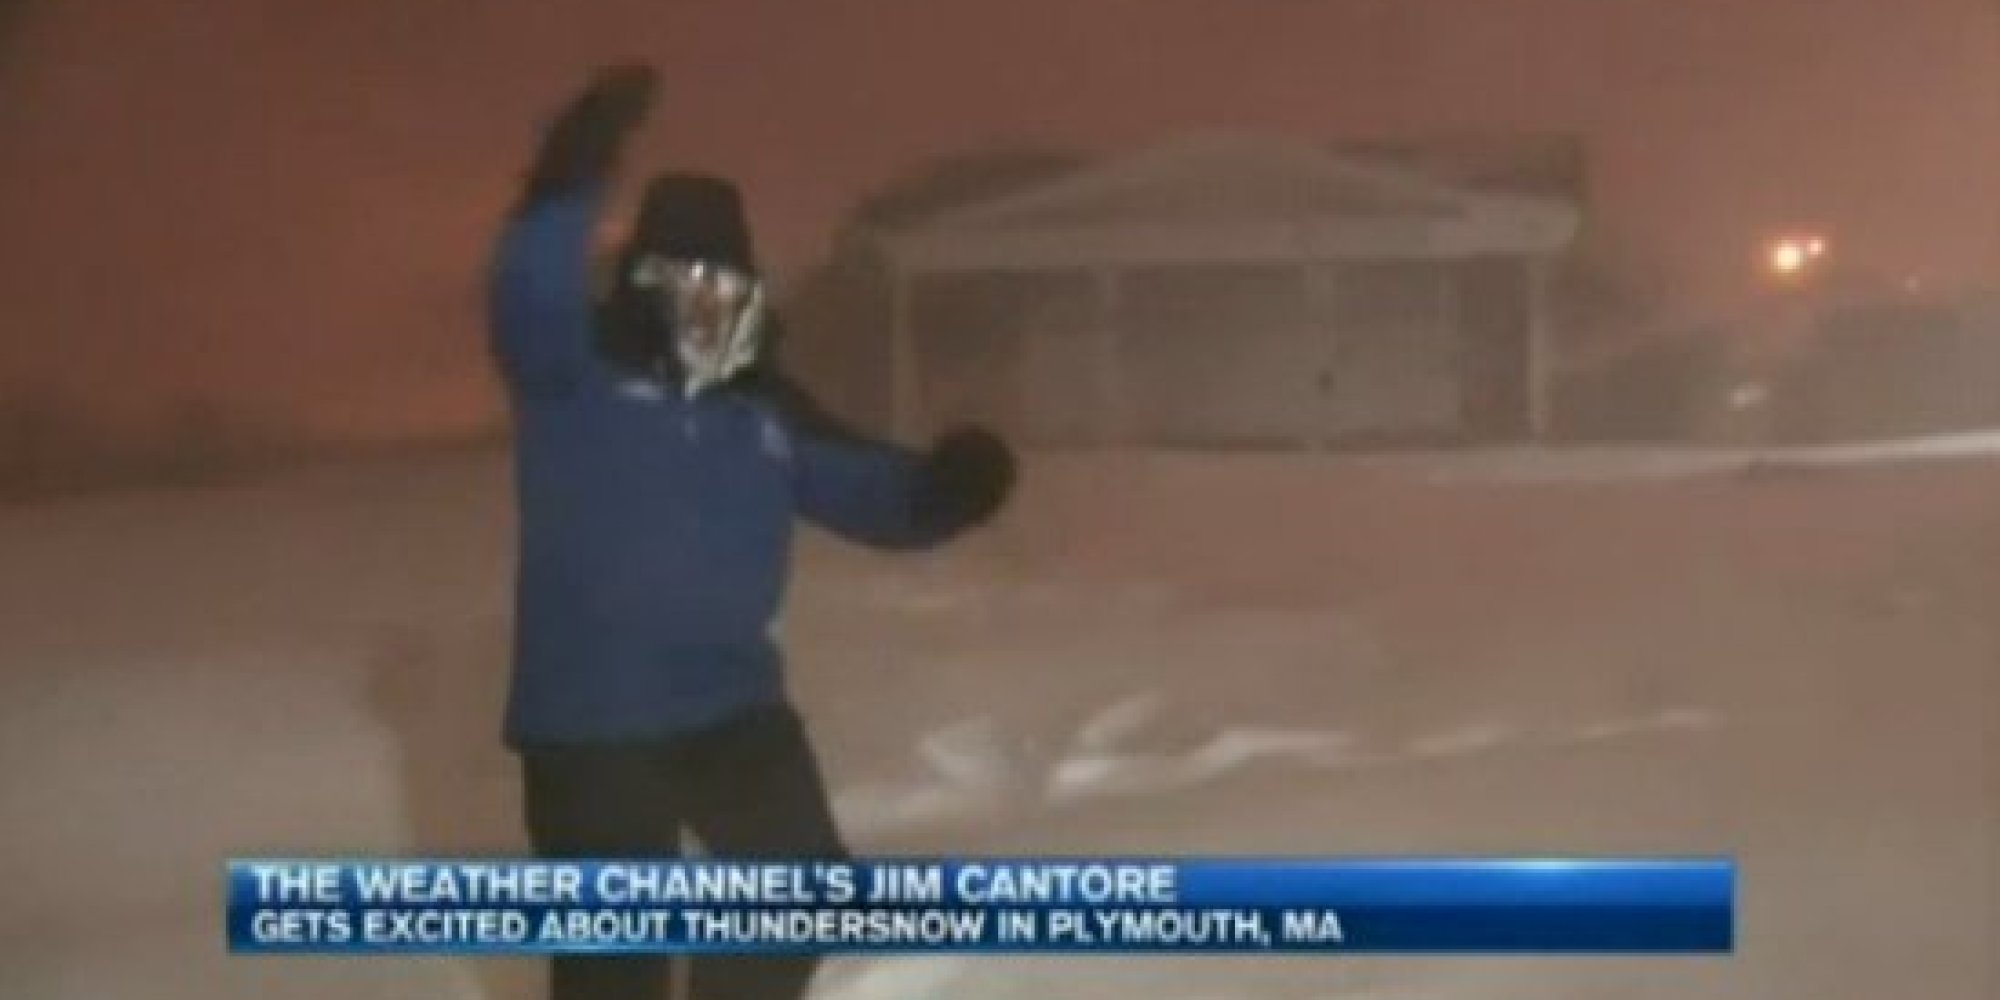 jim cantore u0026 39 s reaction to thundersnow is amazing